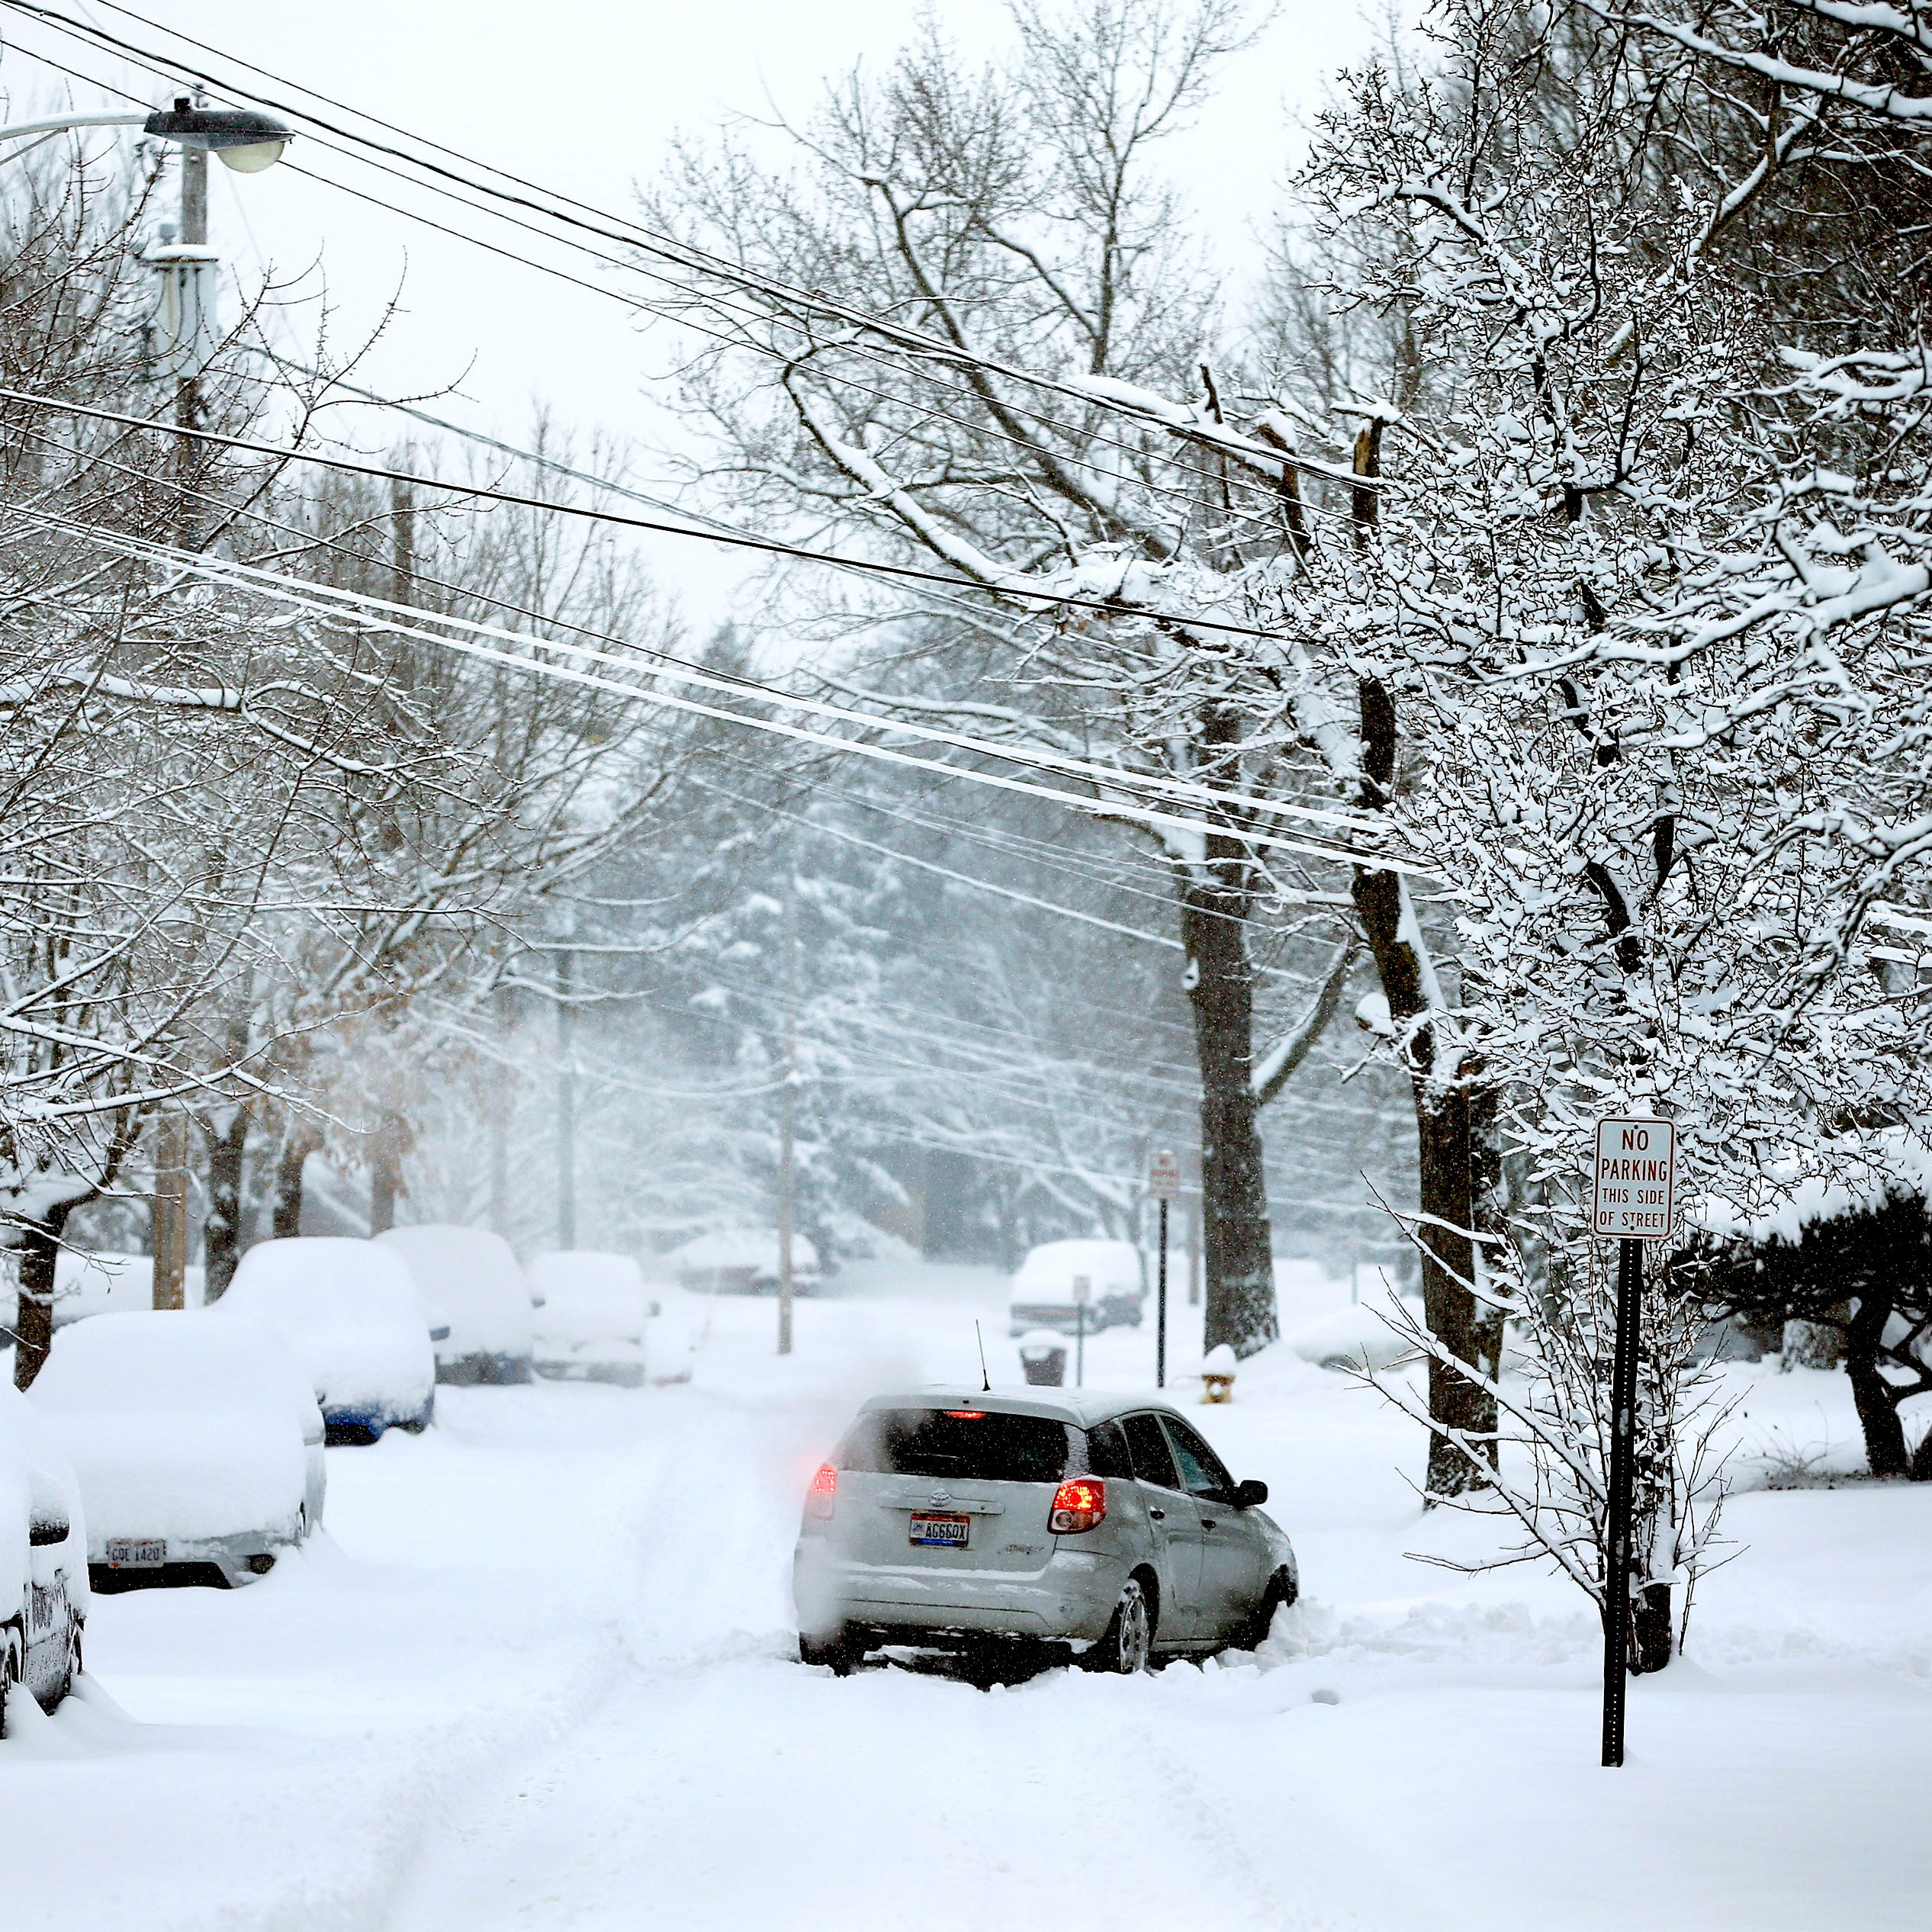 Say it ain't snow: 2 winter storms, then an Arctic blast from the 'fractured' polar vortex